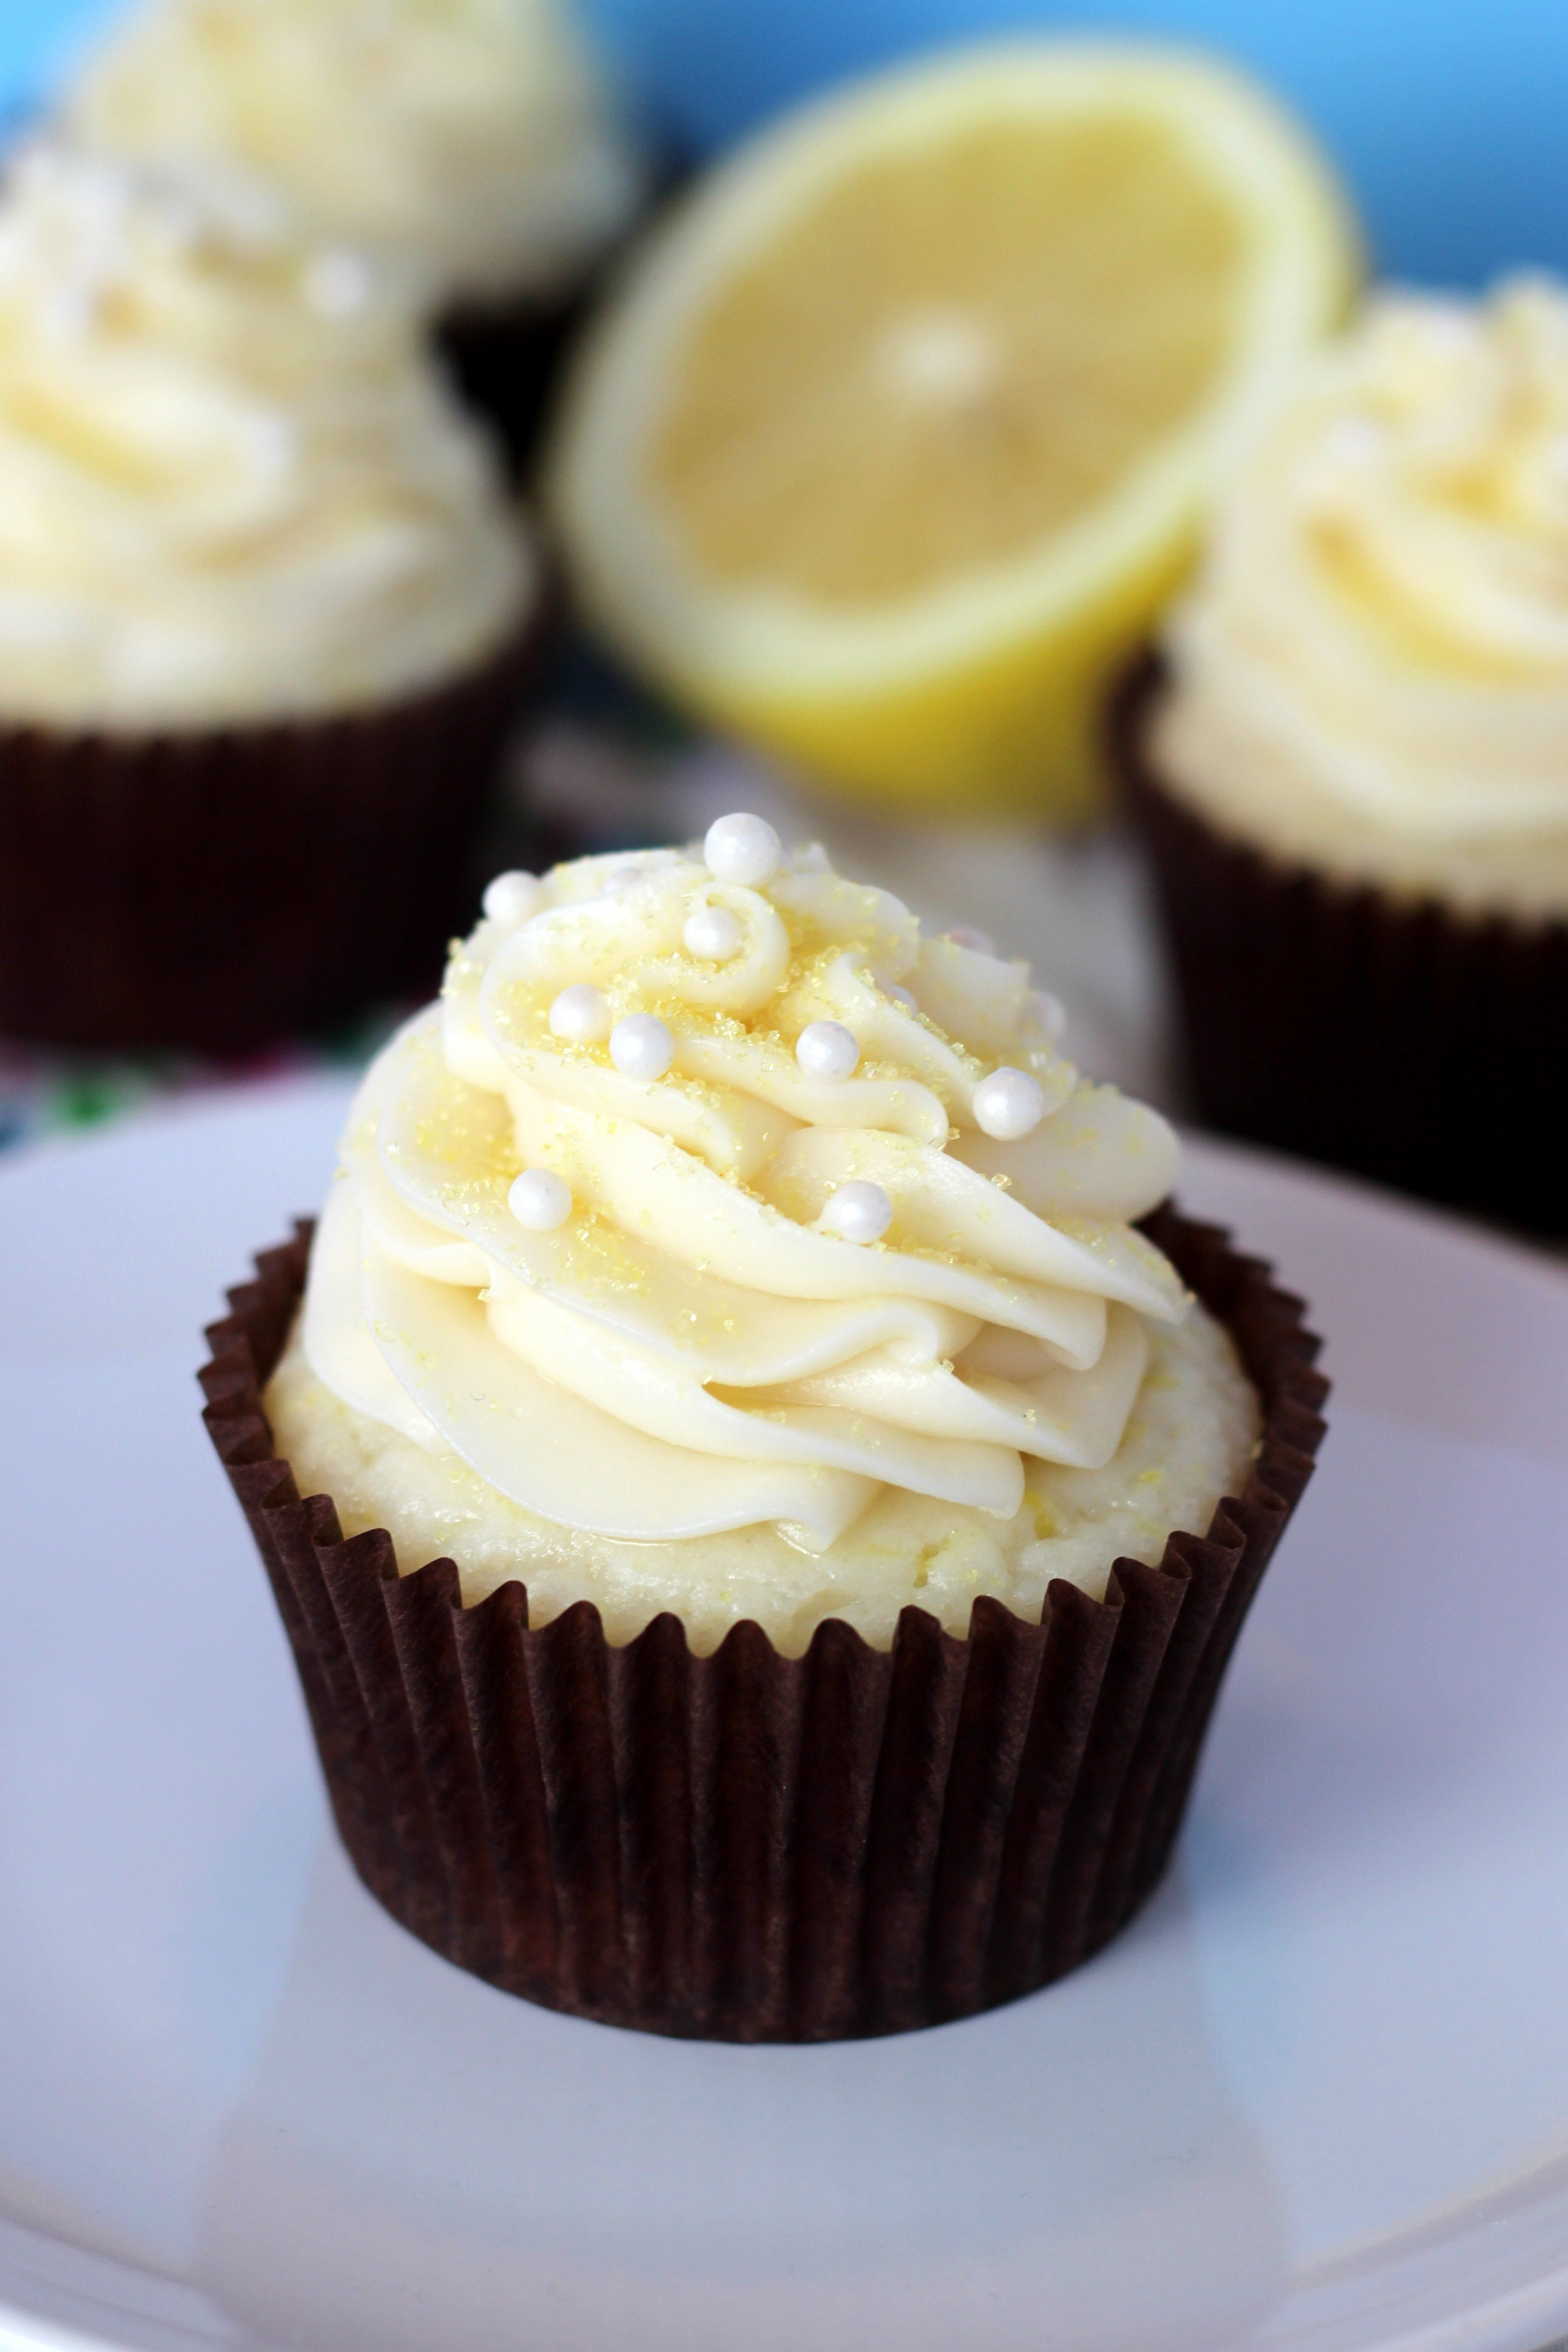 Lemon Cream Cupcakes Start With A Cake Mix And Add Fresh Lemon Juice And Sour Cream Along With Other Ingredients Desserts Cupcake Recipes Dessert Recipes